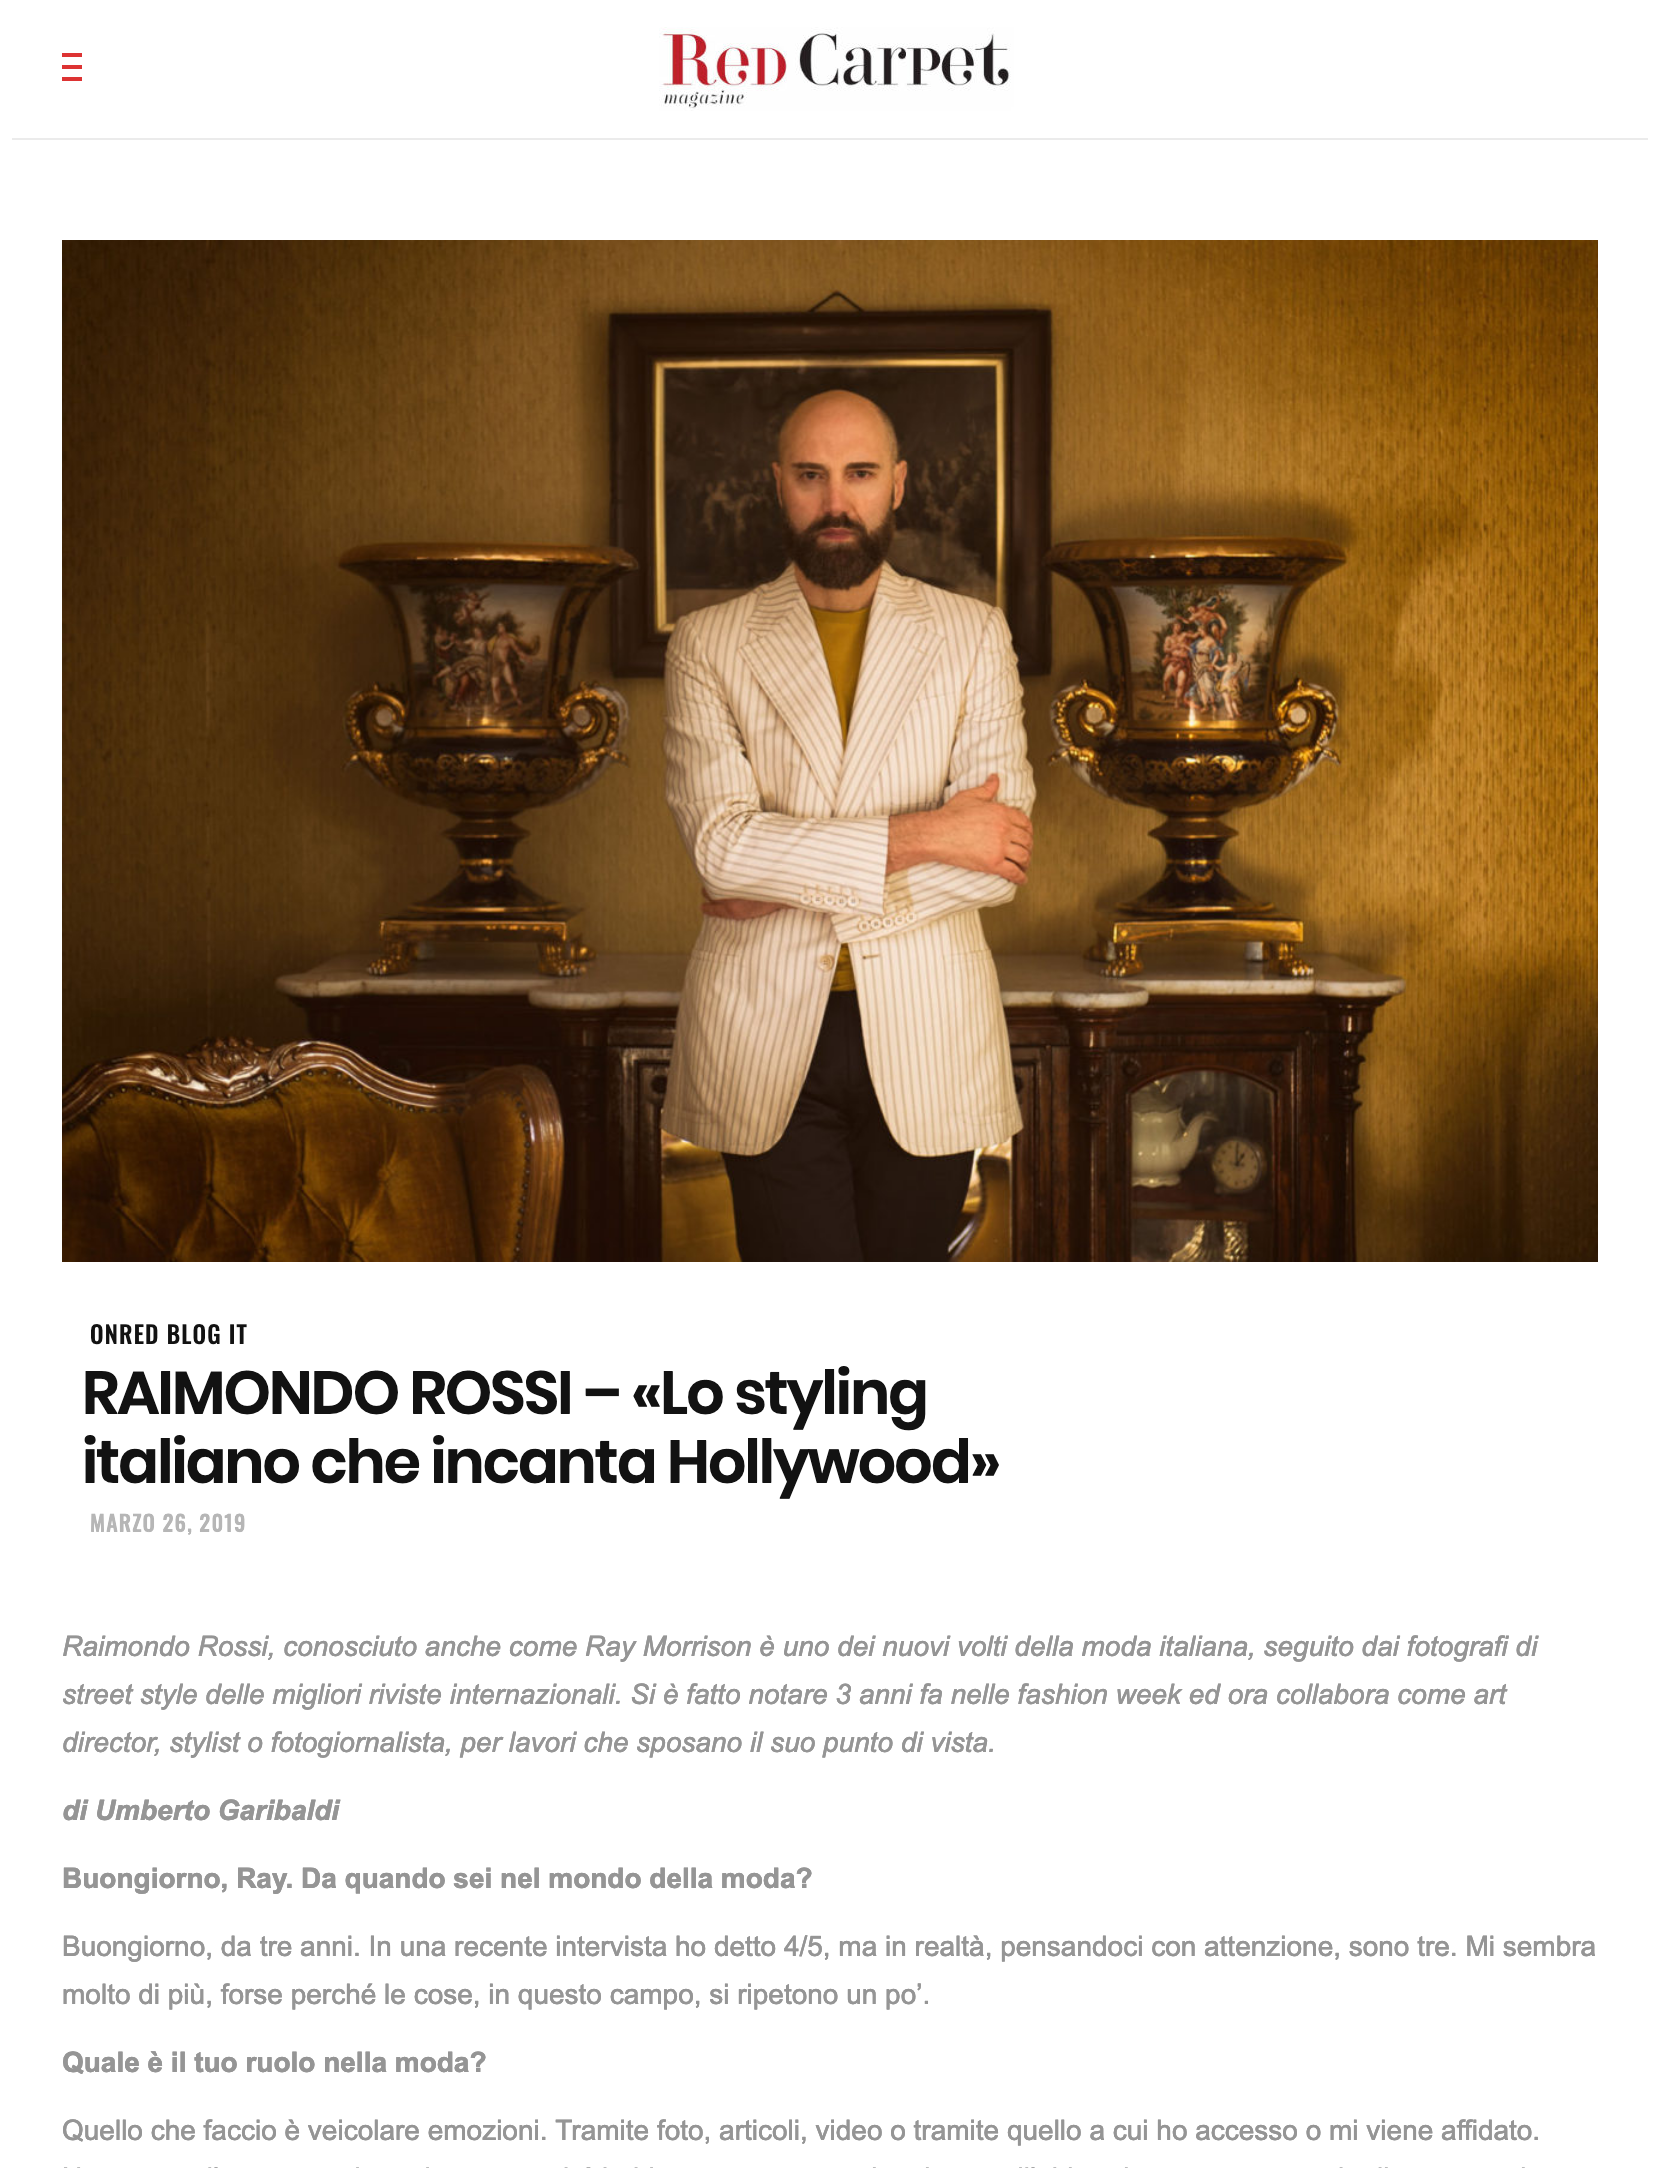 Red Carpet - Ray Morrison (Raimondo Rossi)